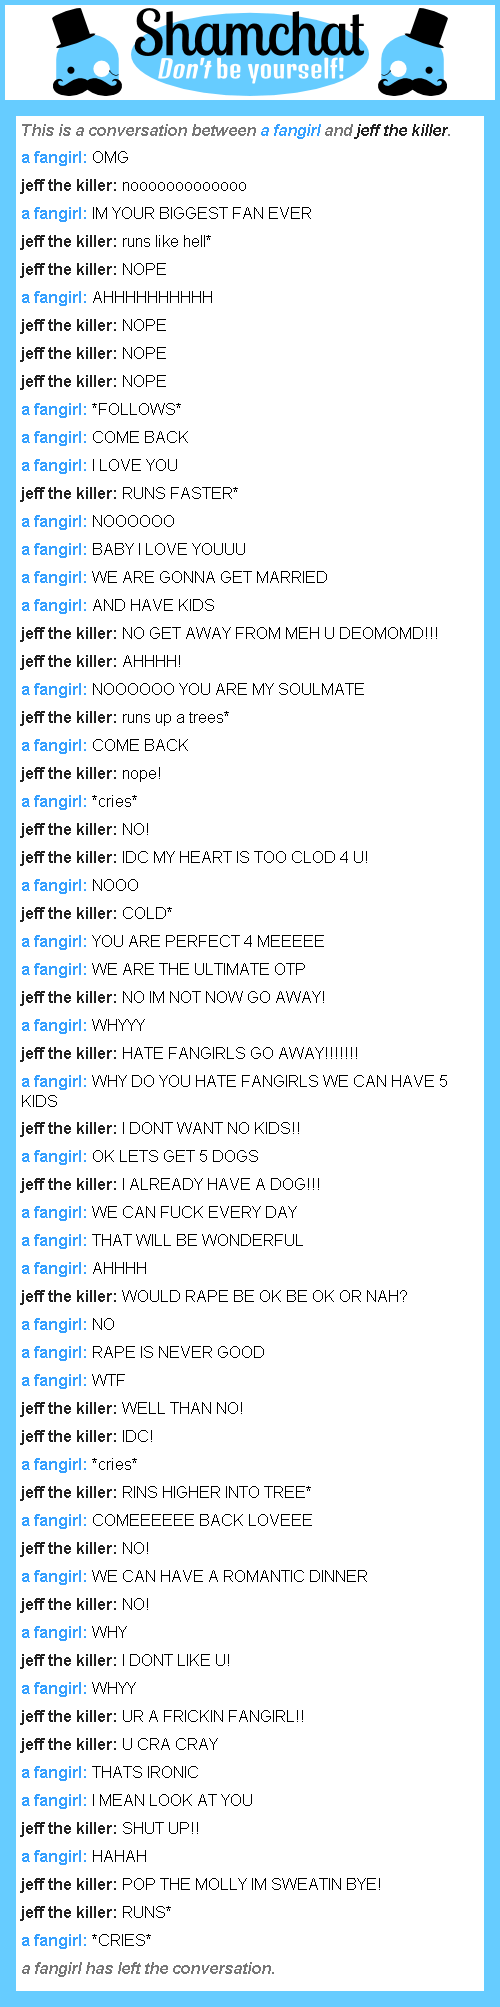 A conversation between jeff the killer and a fangirl lol